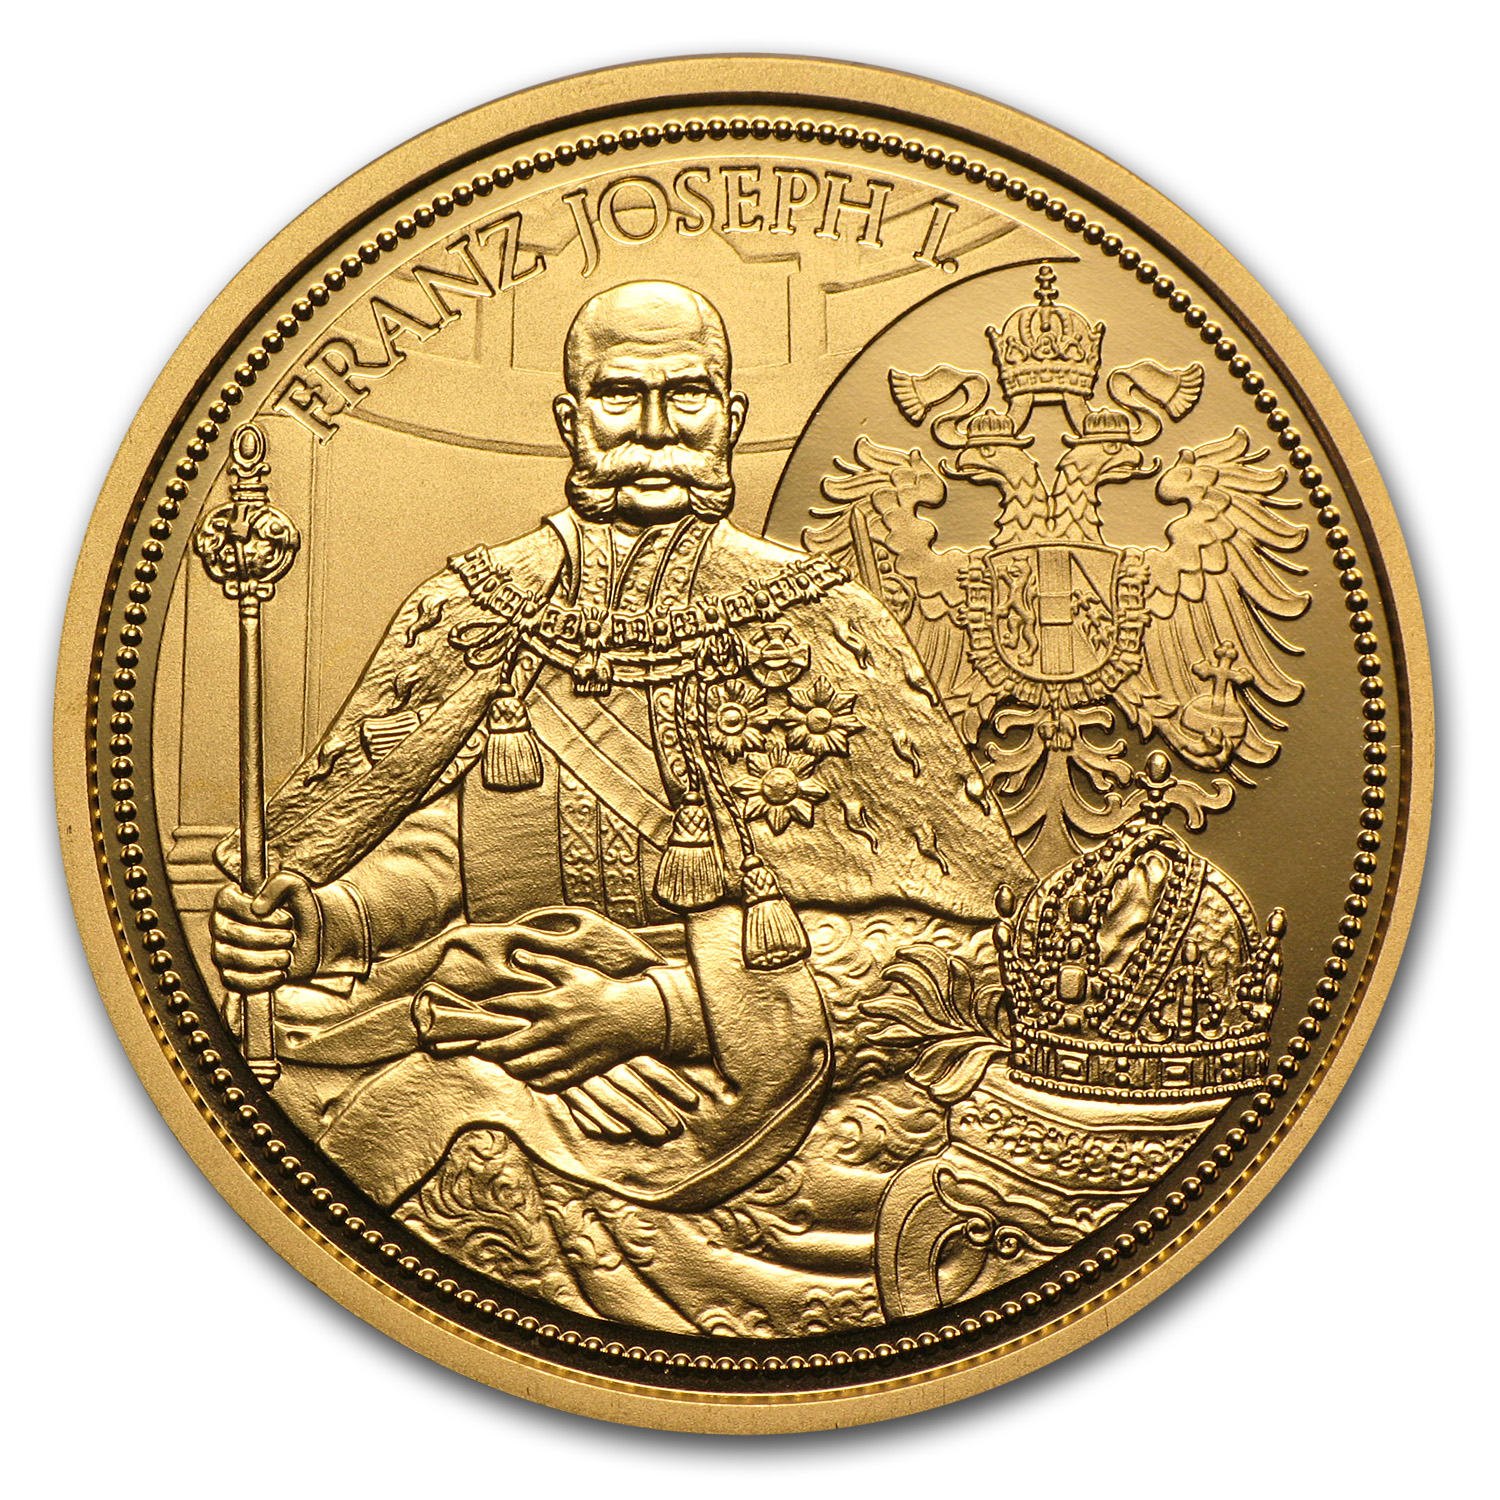 2012 The Imperial Crown of Austria 100 Euro Proof Gold Coin